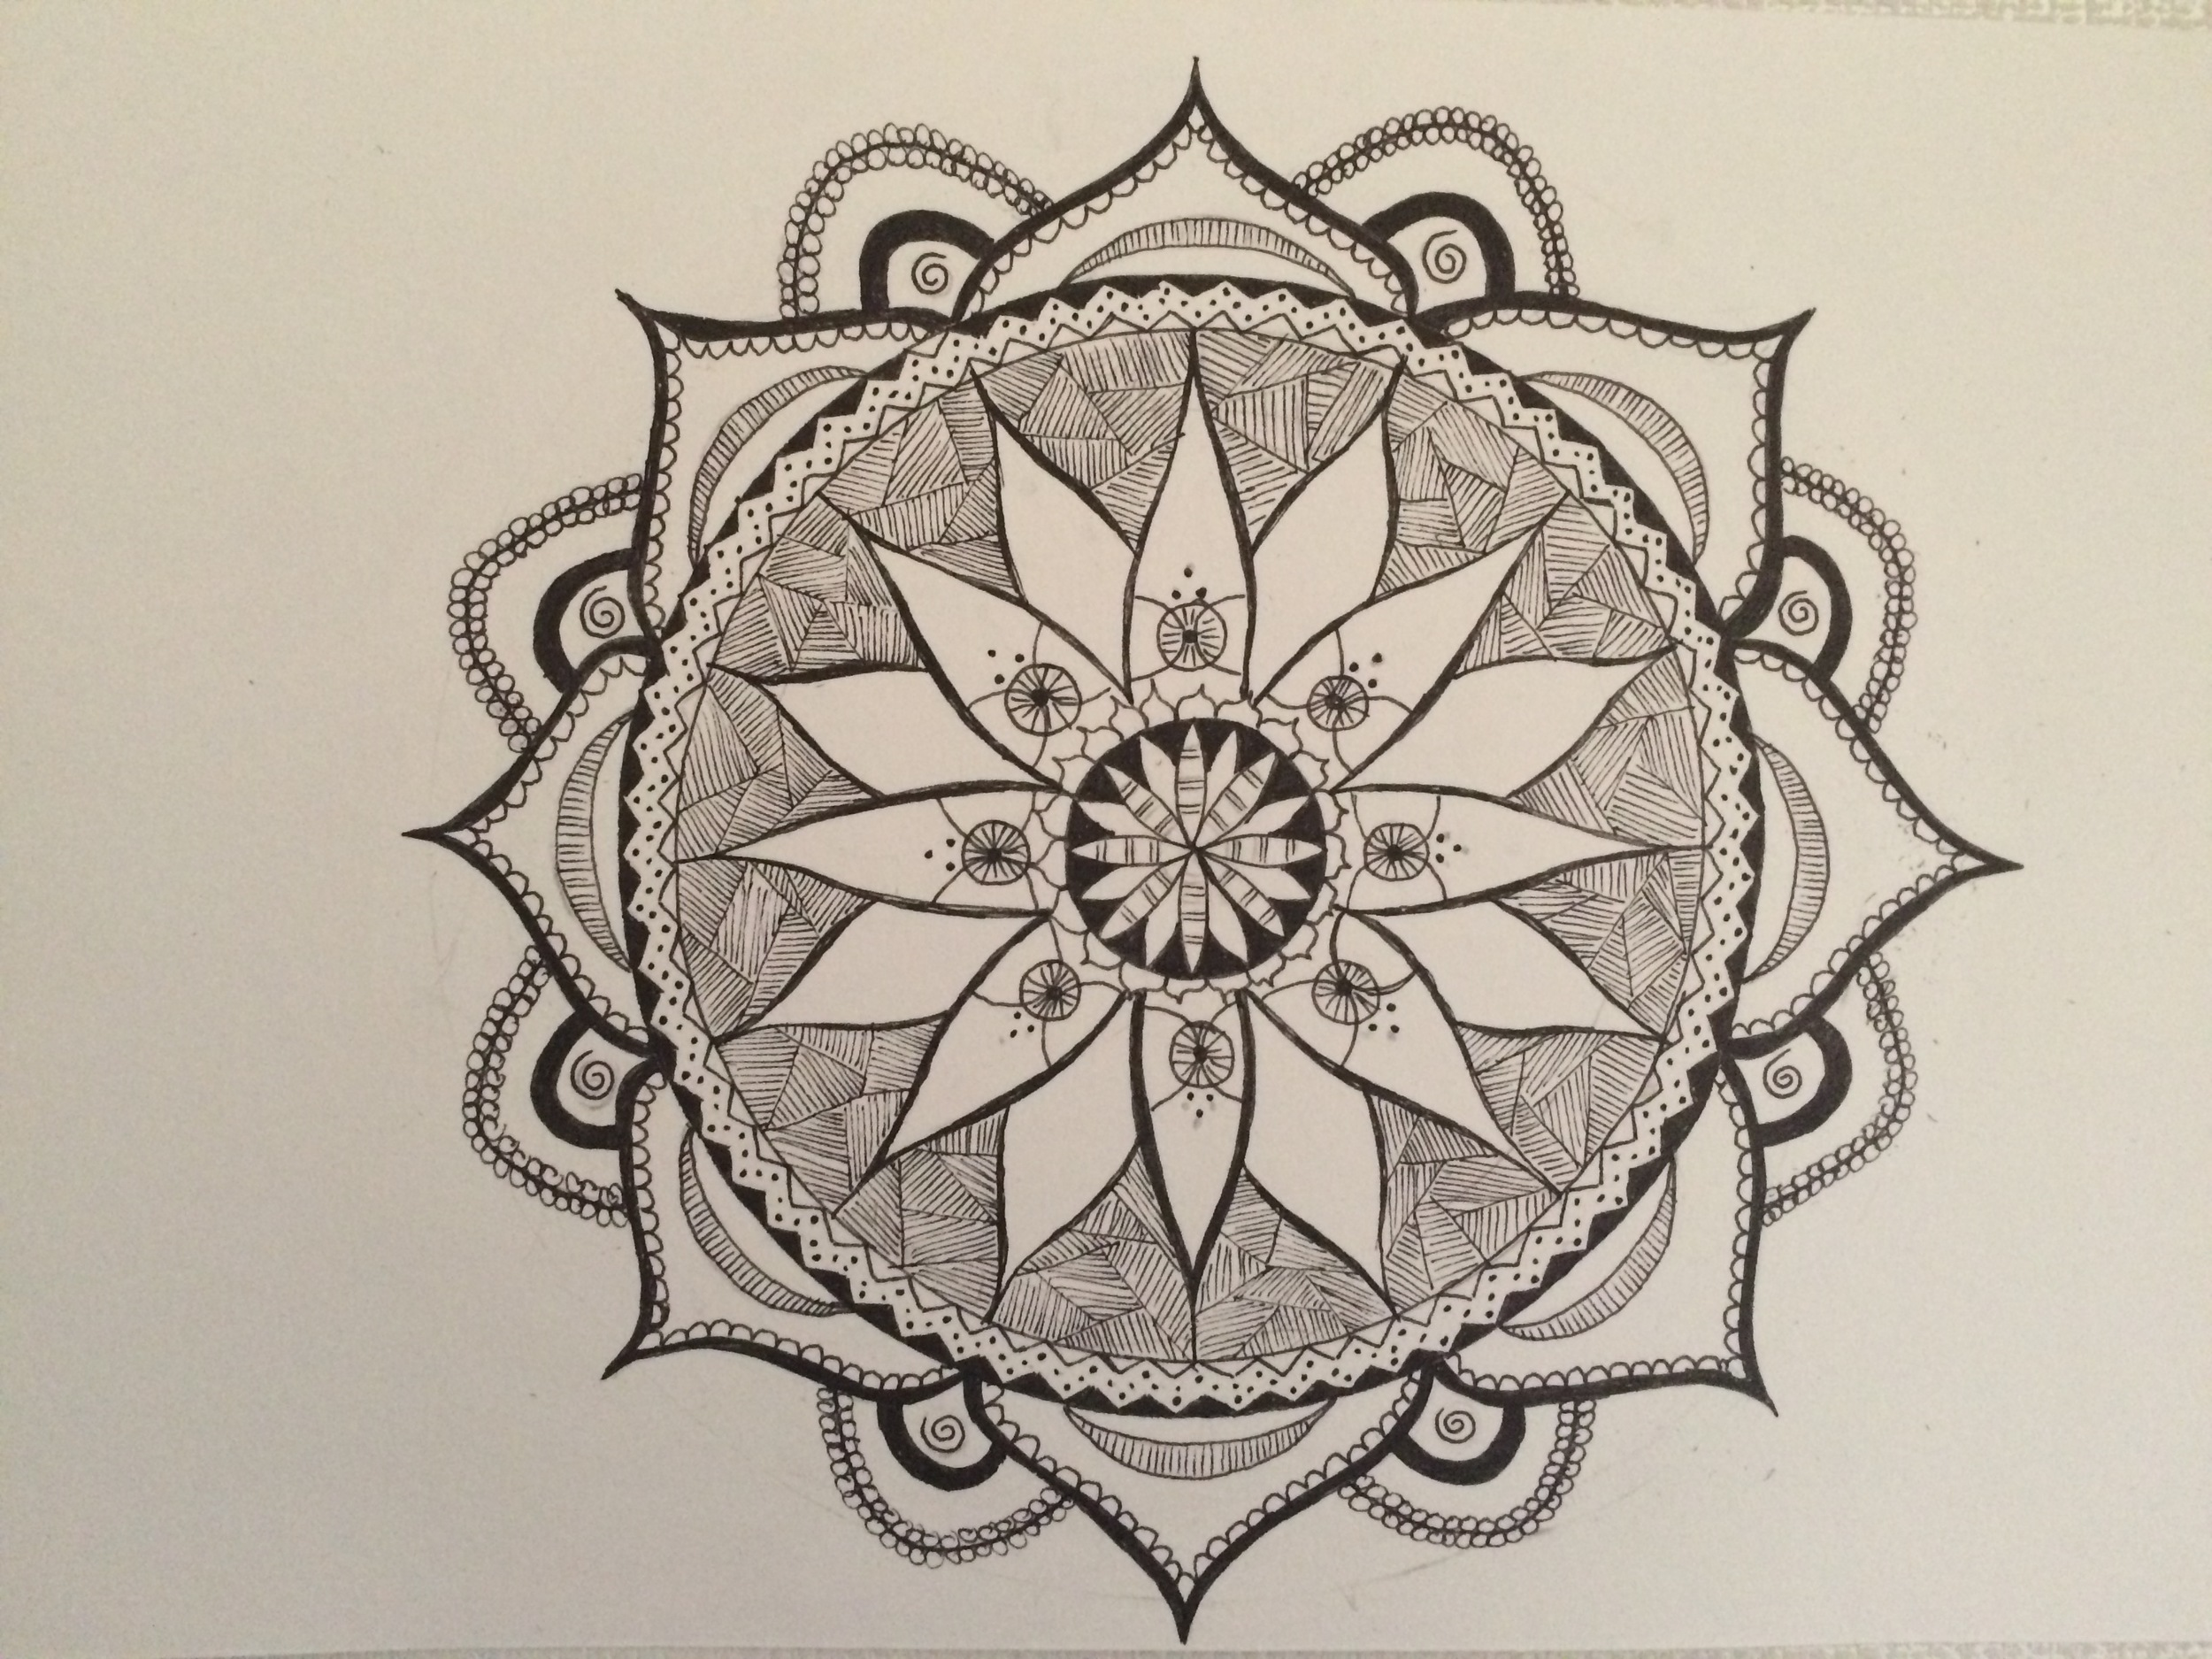 Day 3 - still haven't got to colour, but digging the black and white!